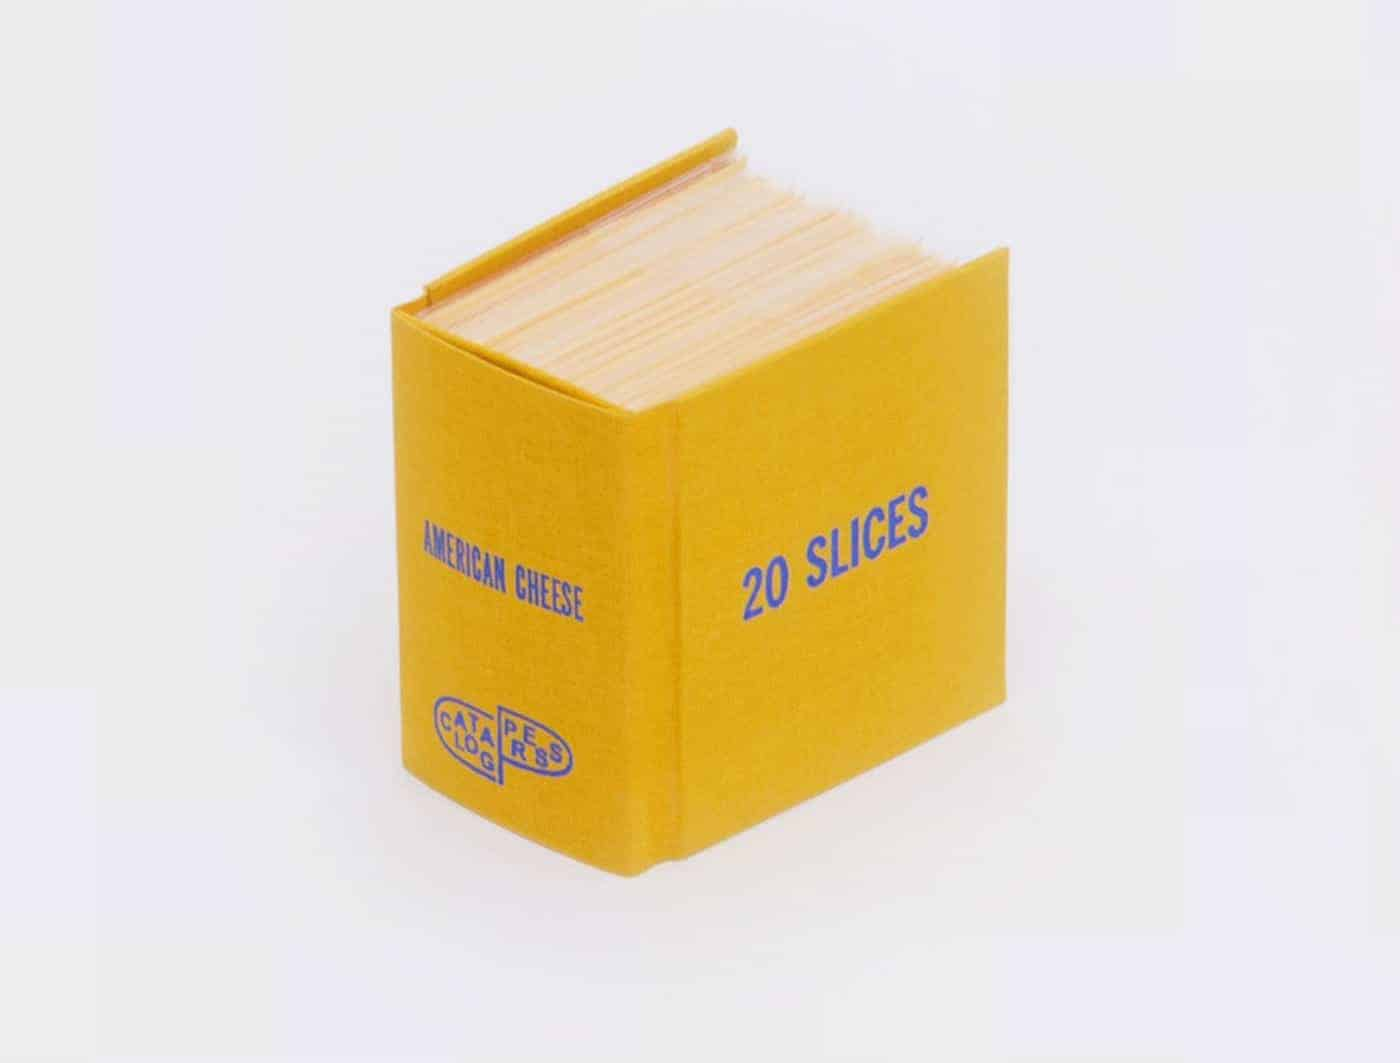 """20 SLICES of American Cheese"""" Image: Ben Denzer/Catalog Press"""